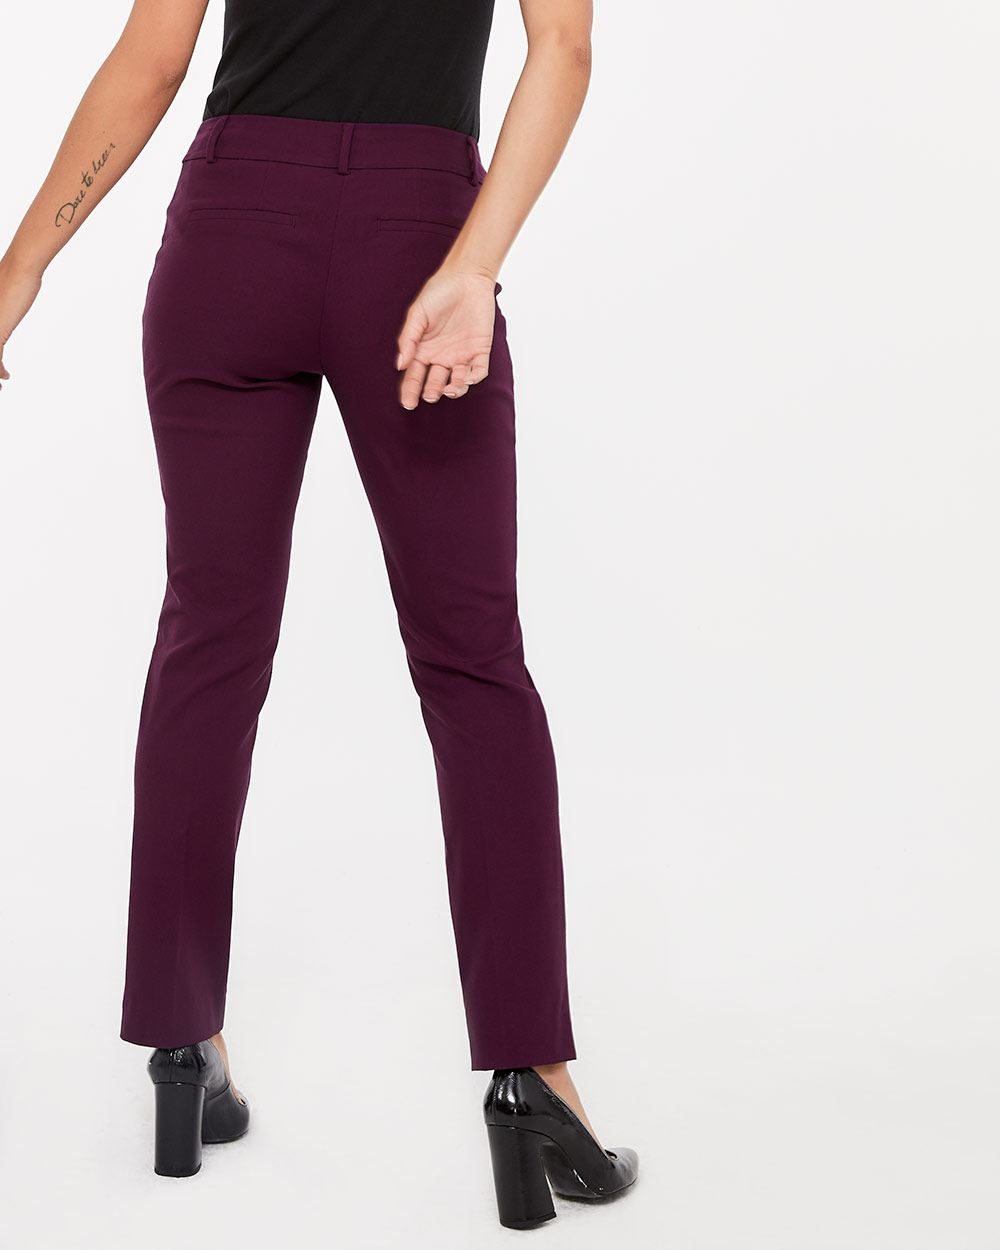 The Petite Iconic Straight Leg Colourful Pants